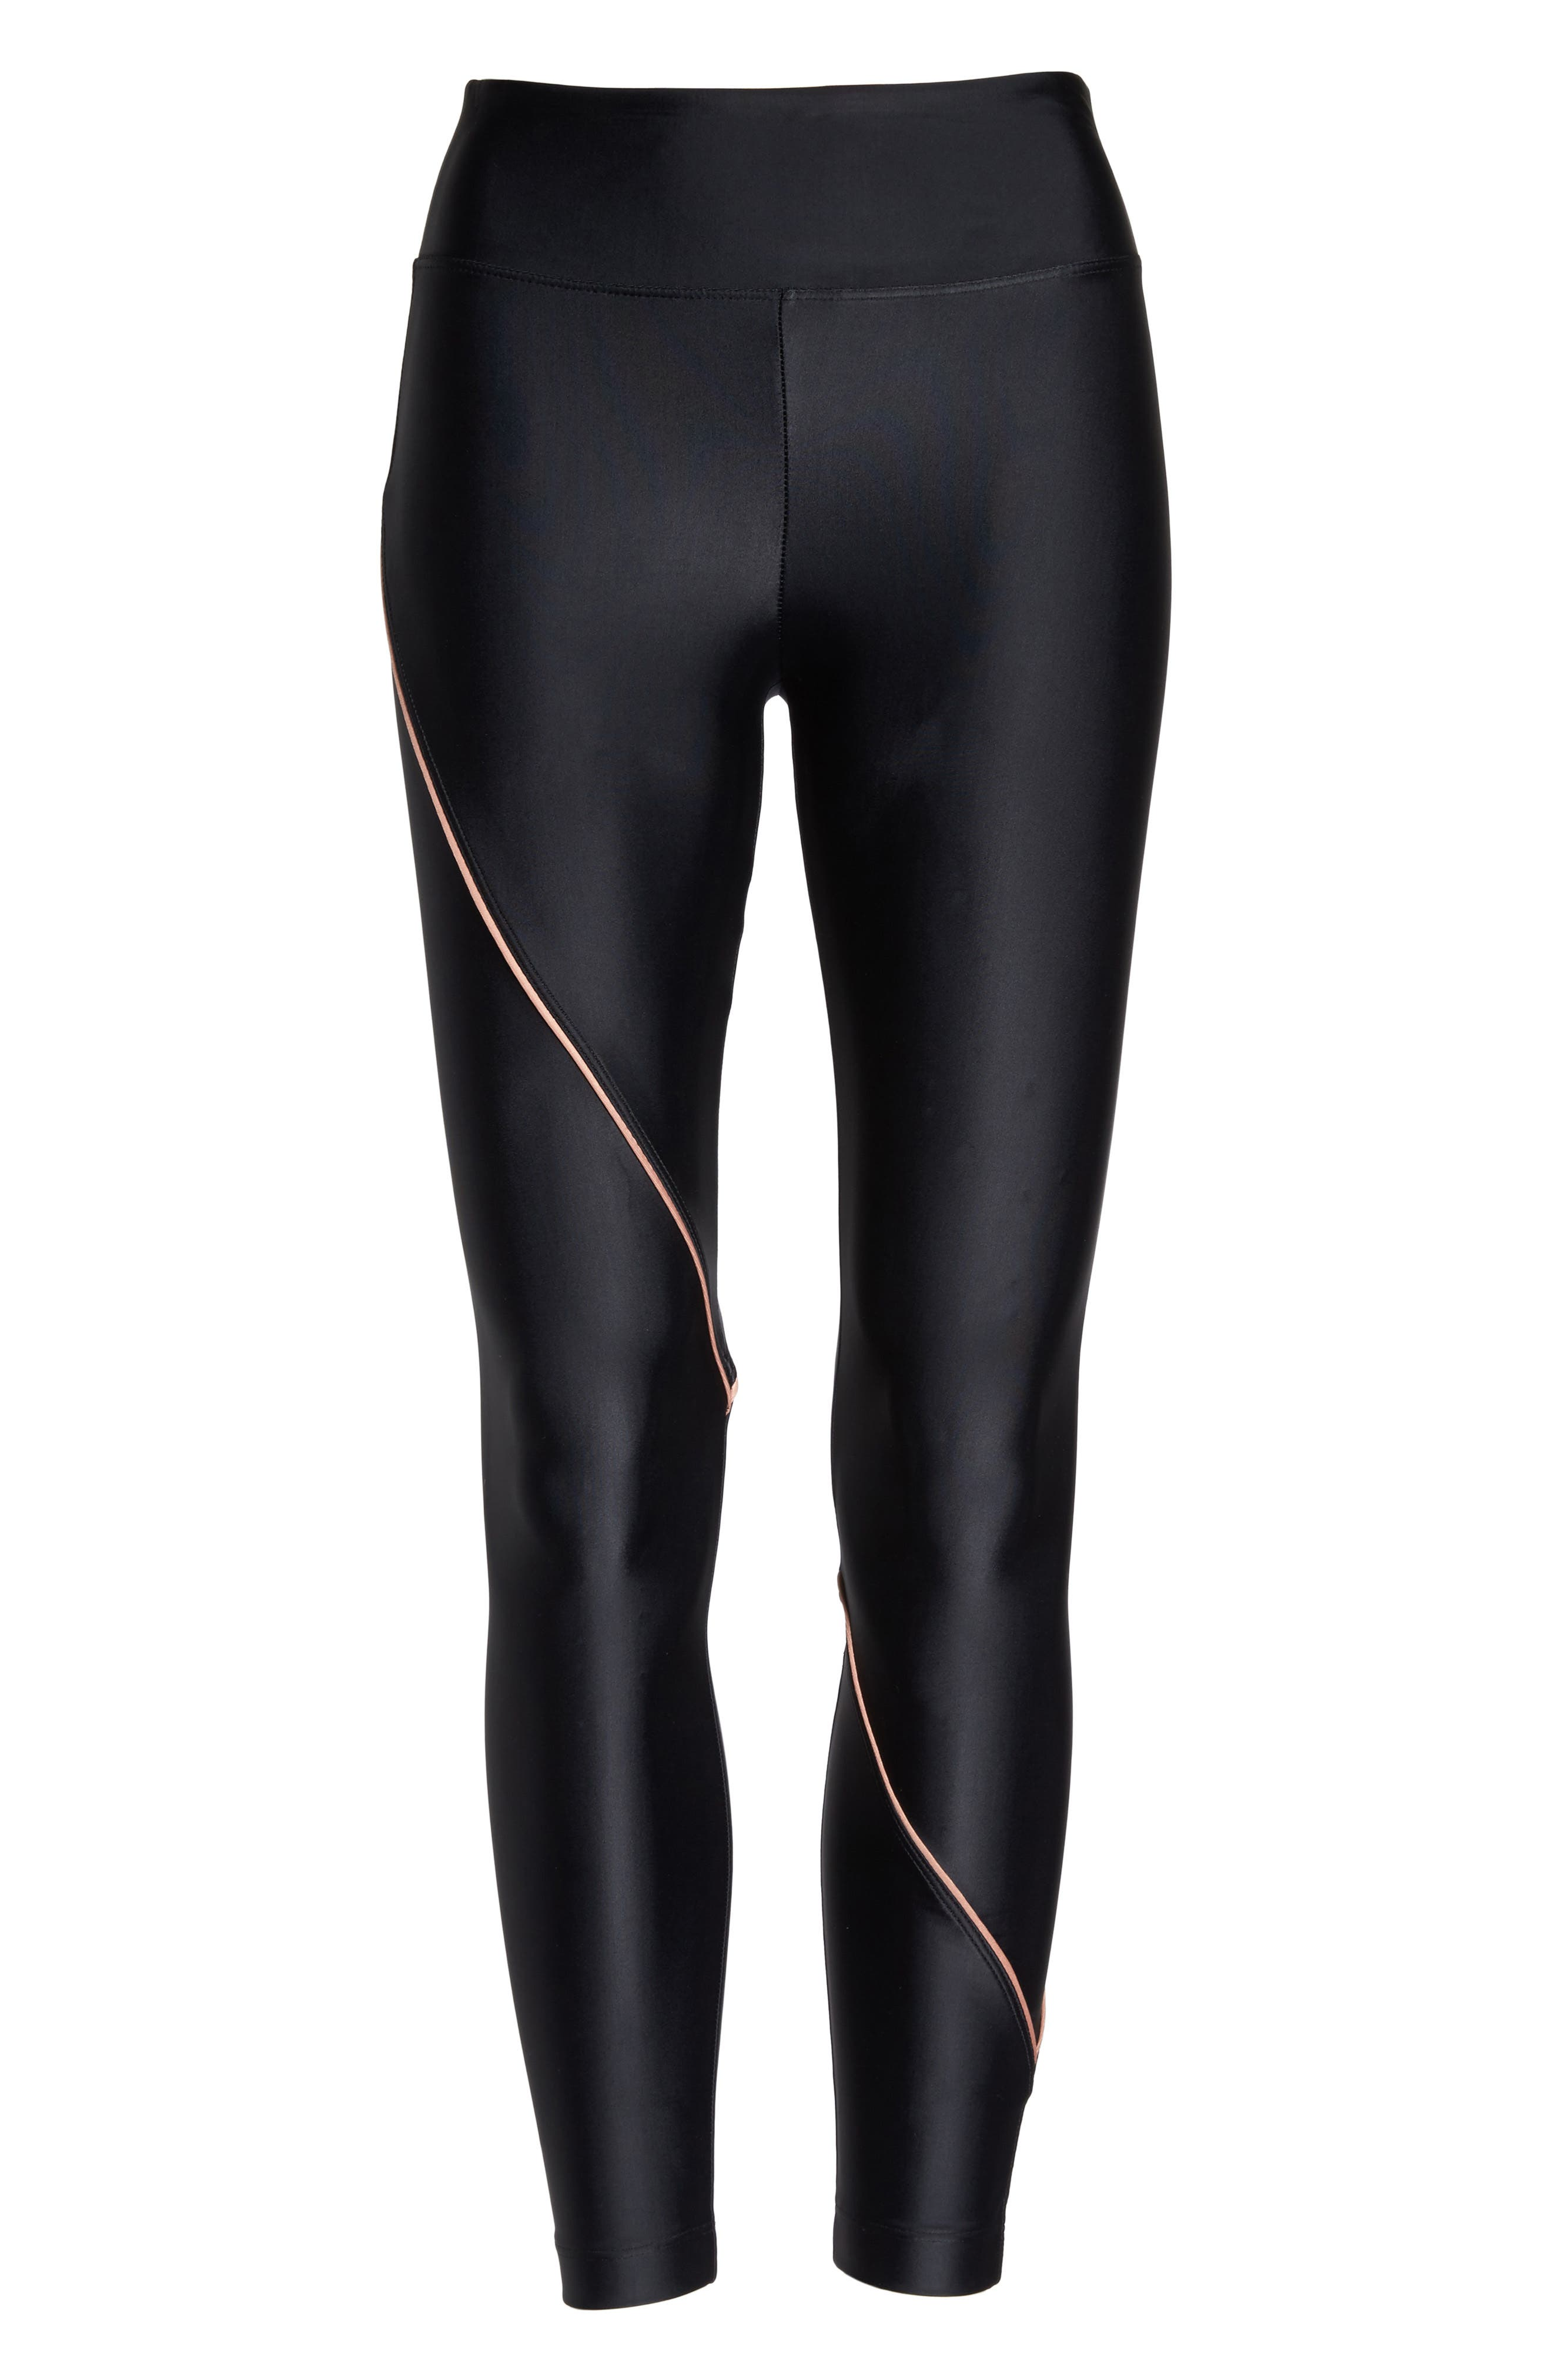 Street Leggings,                             Alternate thumbnail 7, color,                             BLACK